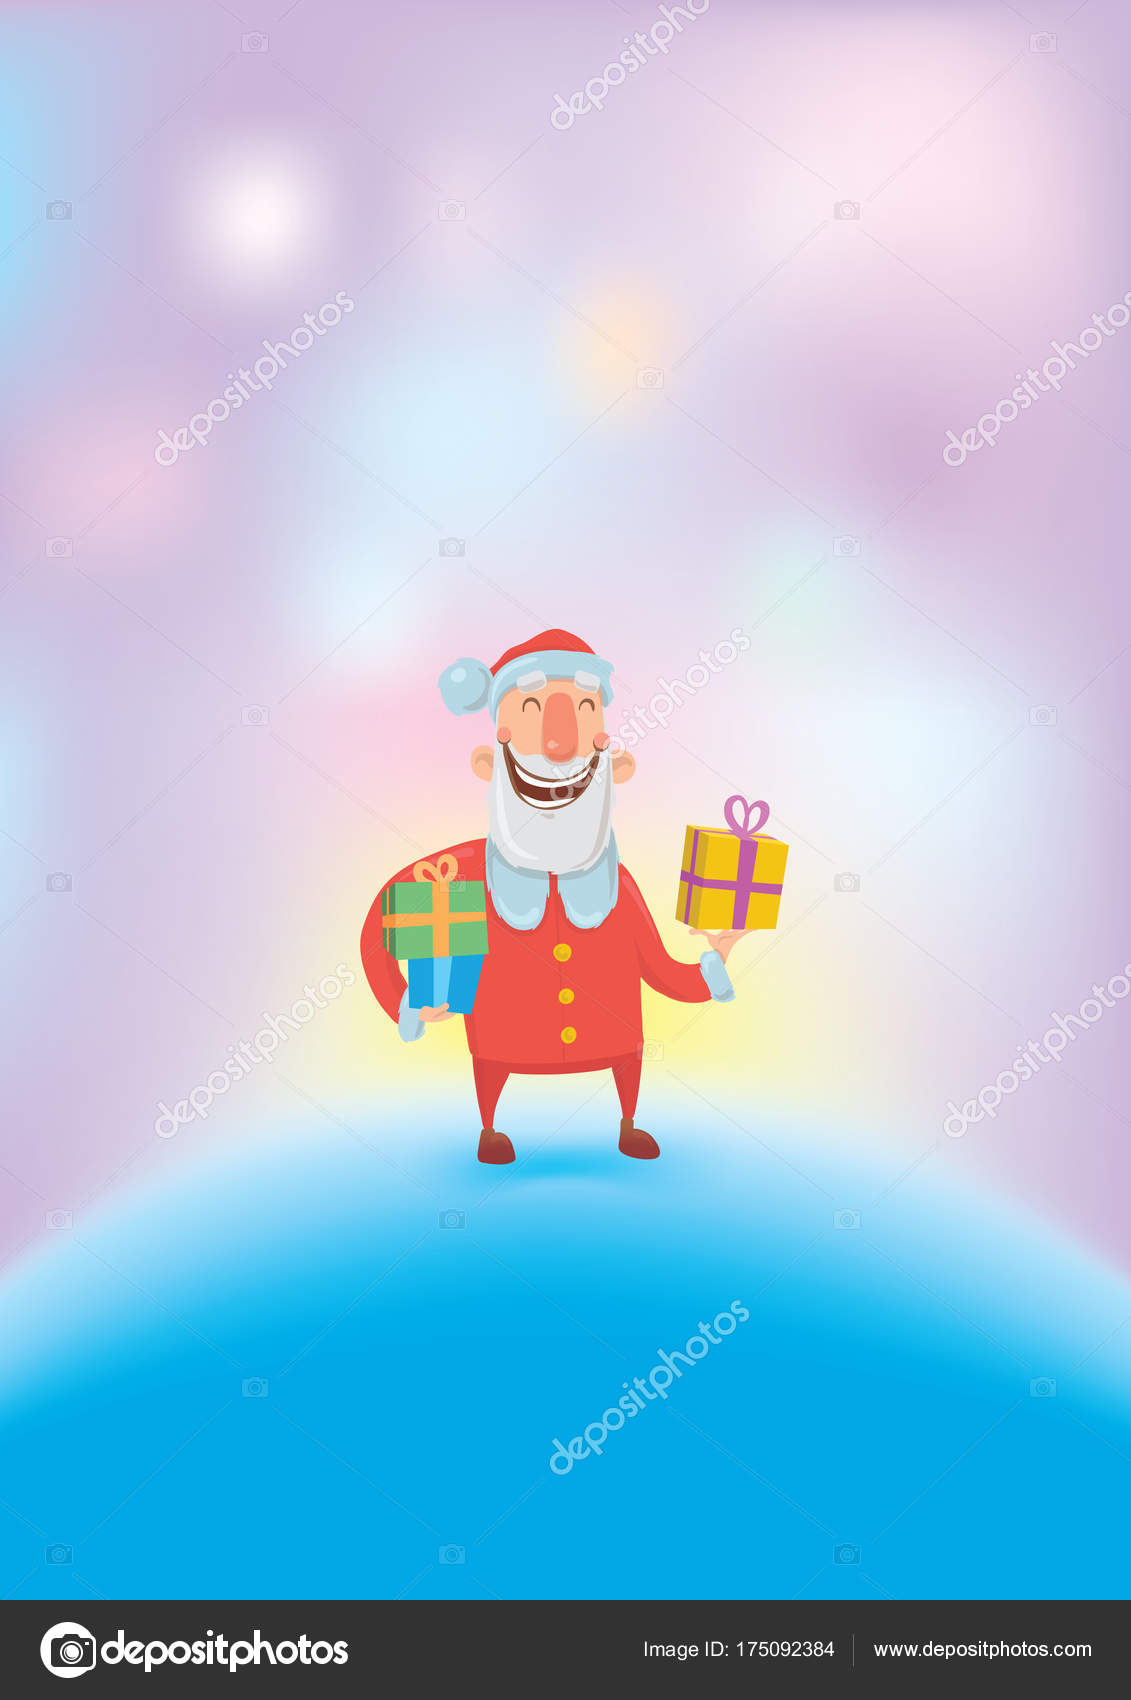 Funny Smiling Santa Claus Carries Gifts In Colorful Boxes On White  Background. Merry Christmas And Happy New Year Greeting Card. Vector  Illustration.